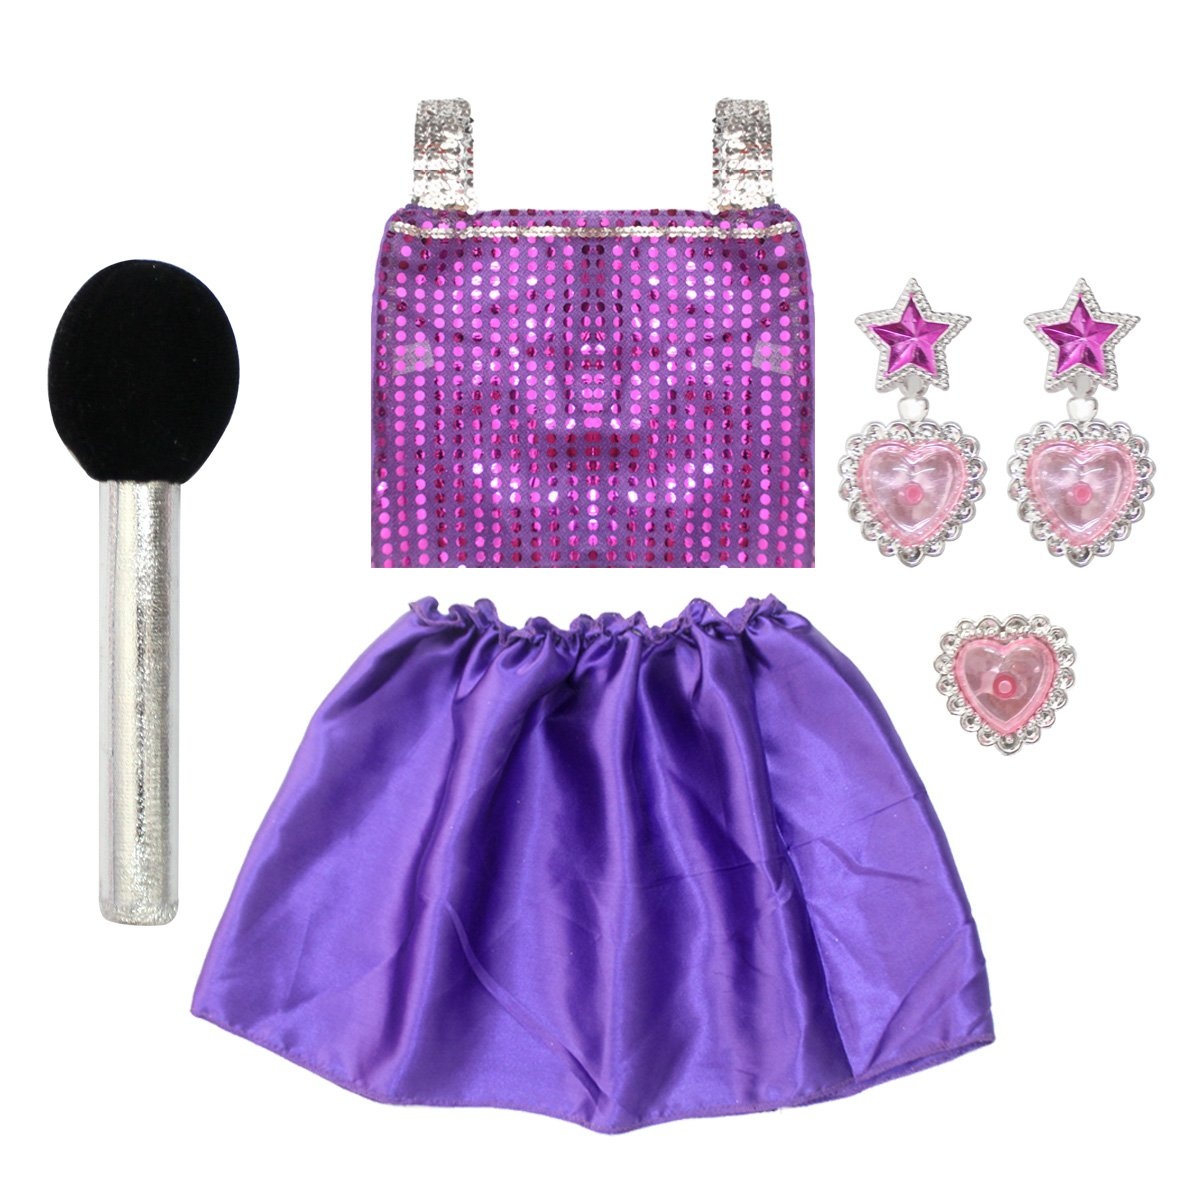 Amazon.com: 20PCS Girls Role Play Dress up Trunk Pretend Play ...